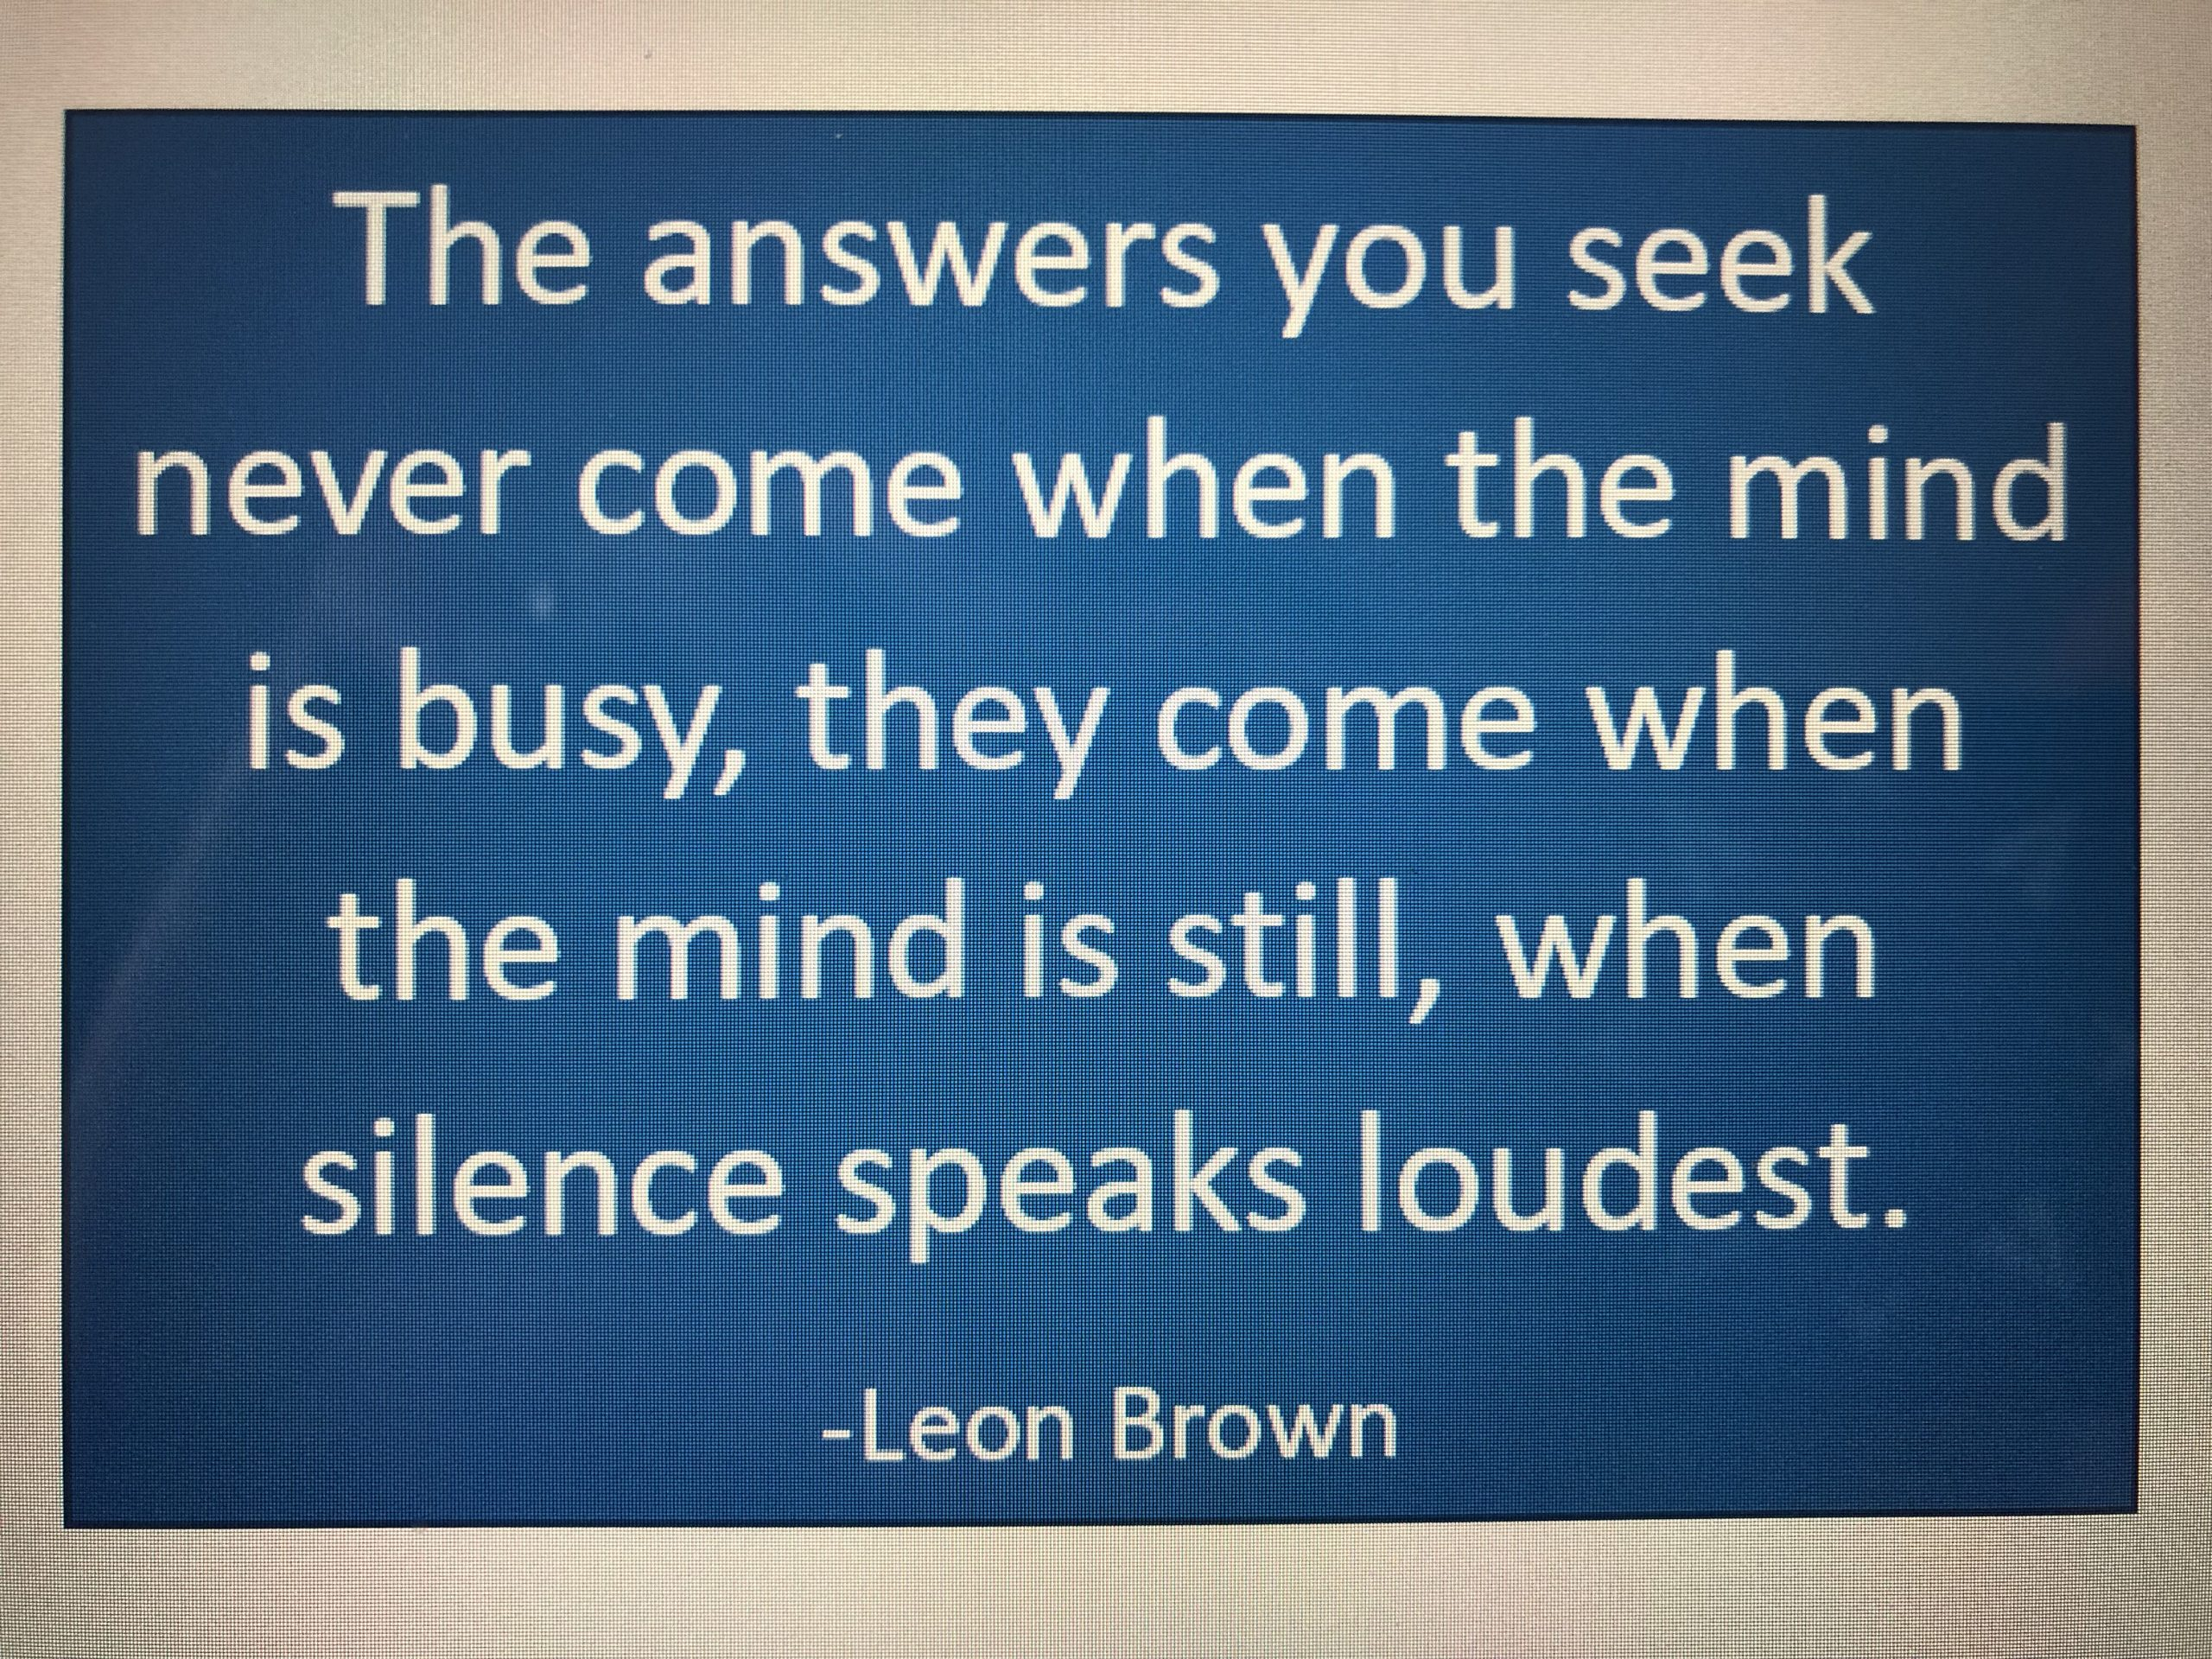 Spend time in silence